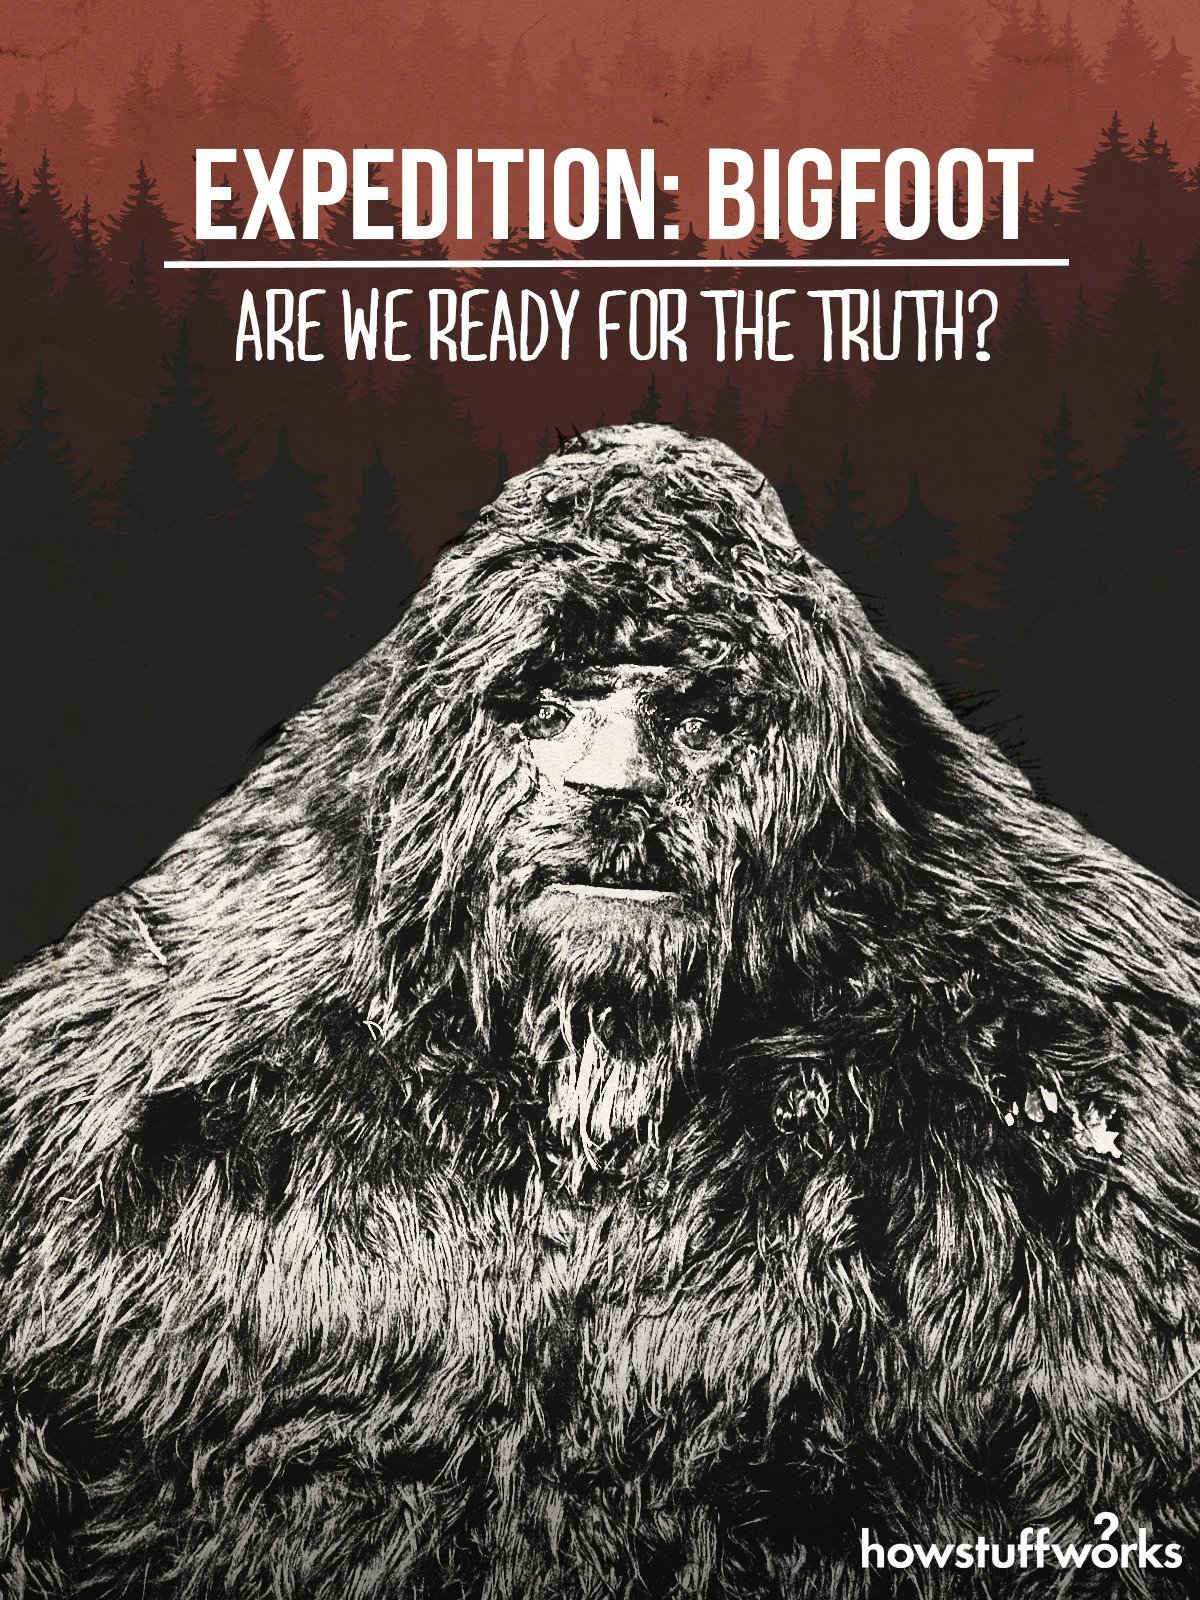 bigfoot in search of the truth